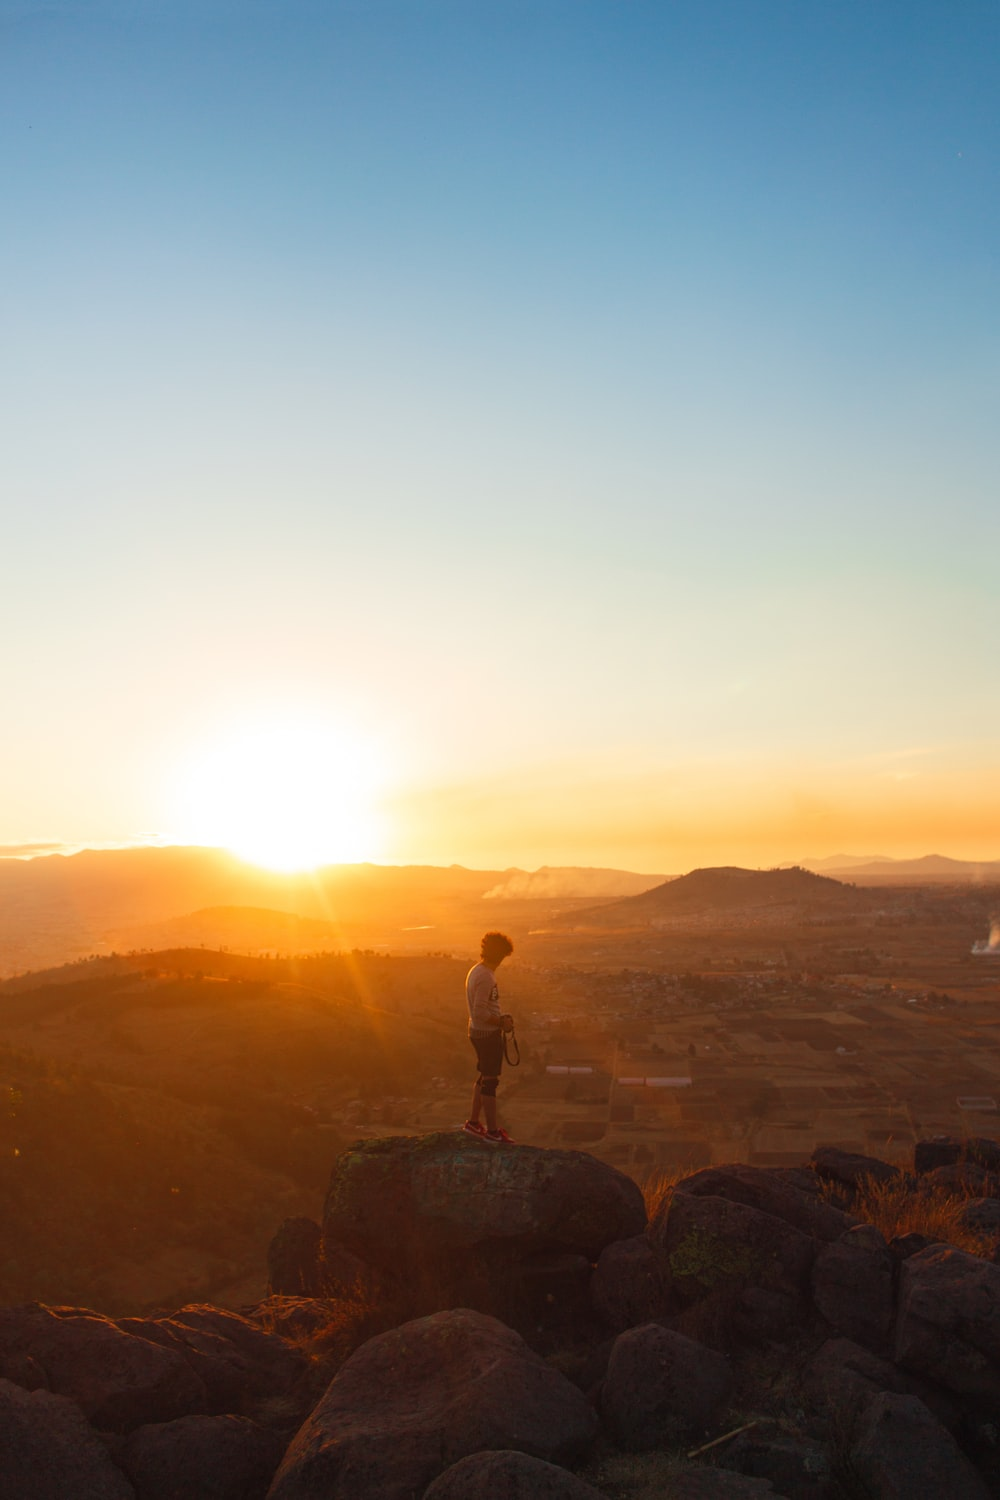 man standing on rock formation during sunset